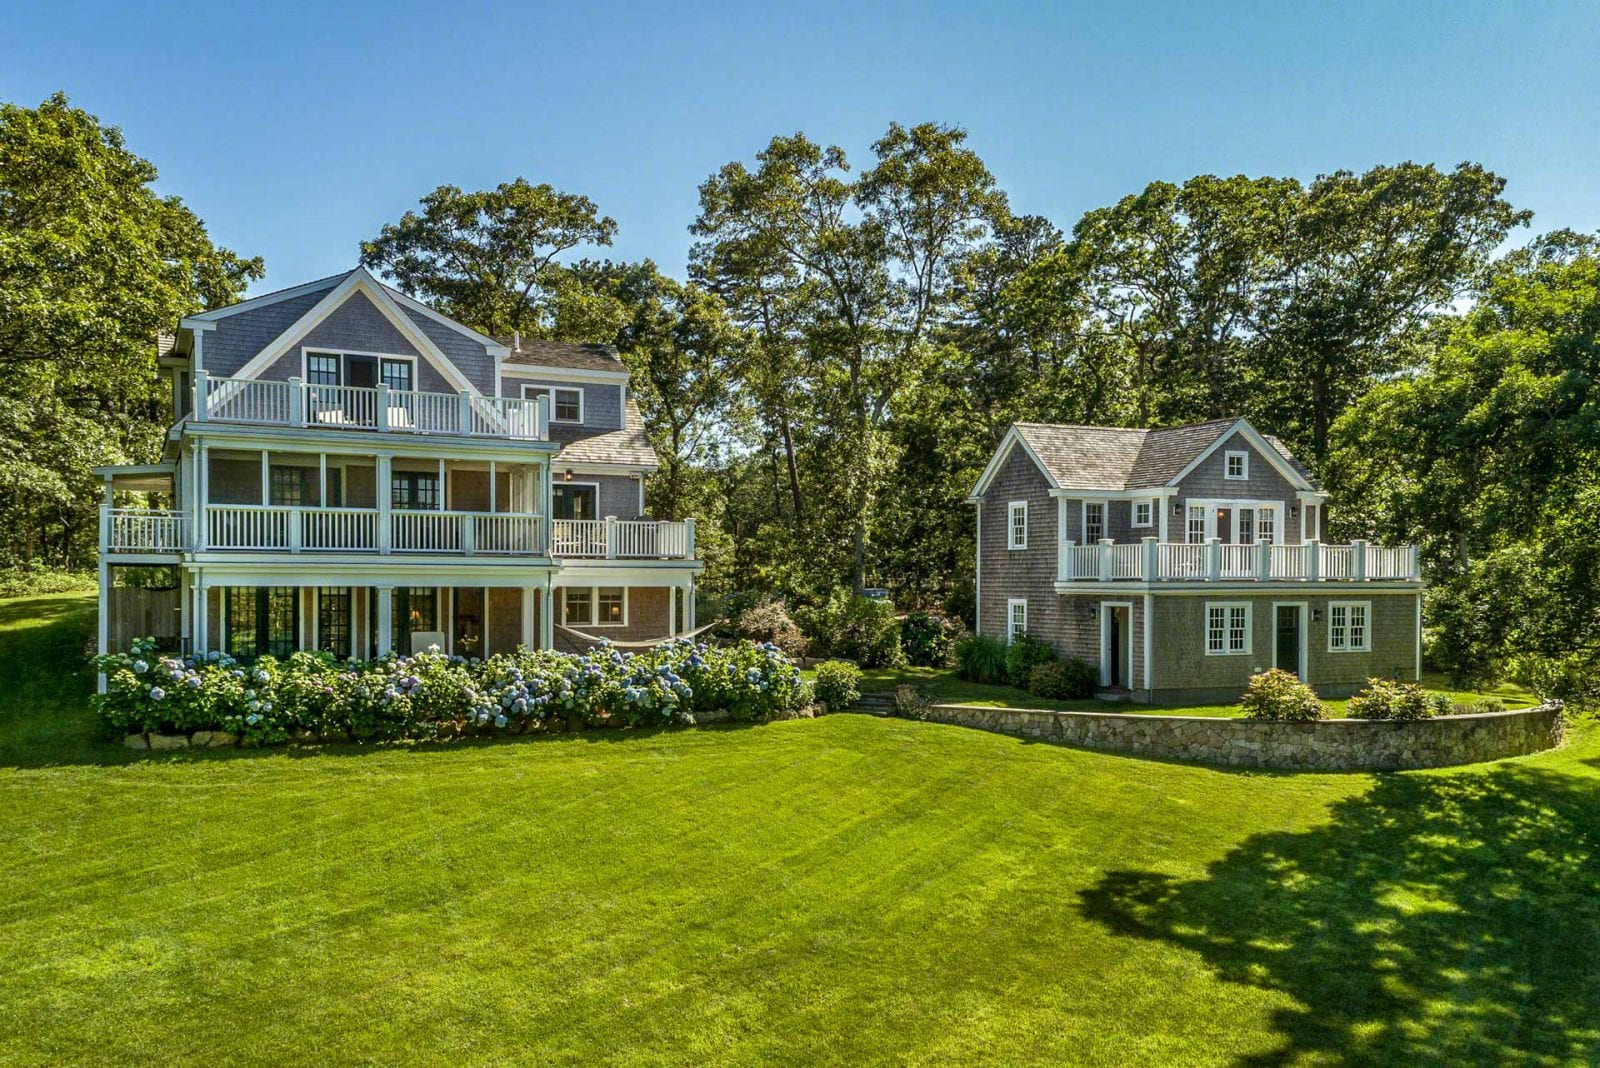 Point B Realty Luxury Home Sale 53 Hilltop Road Vineyard Haven MA 02568